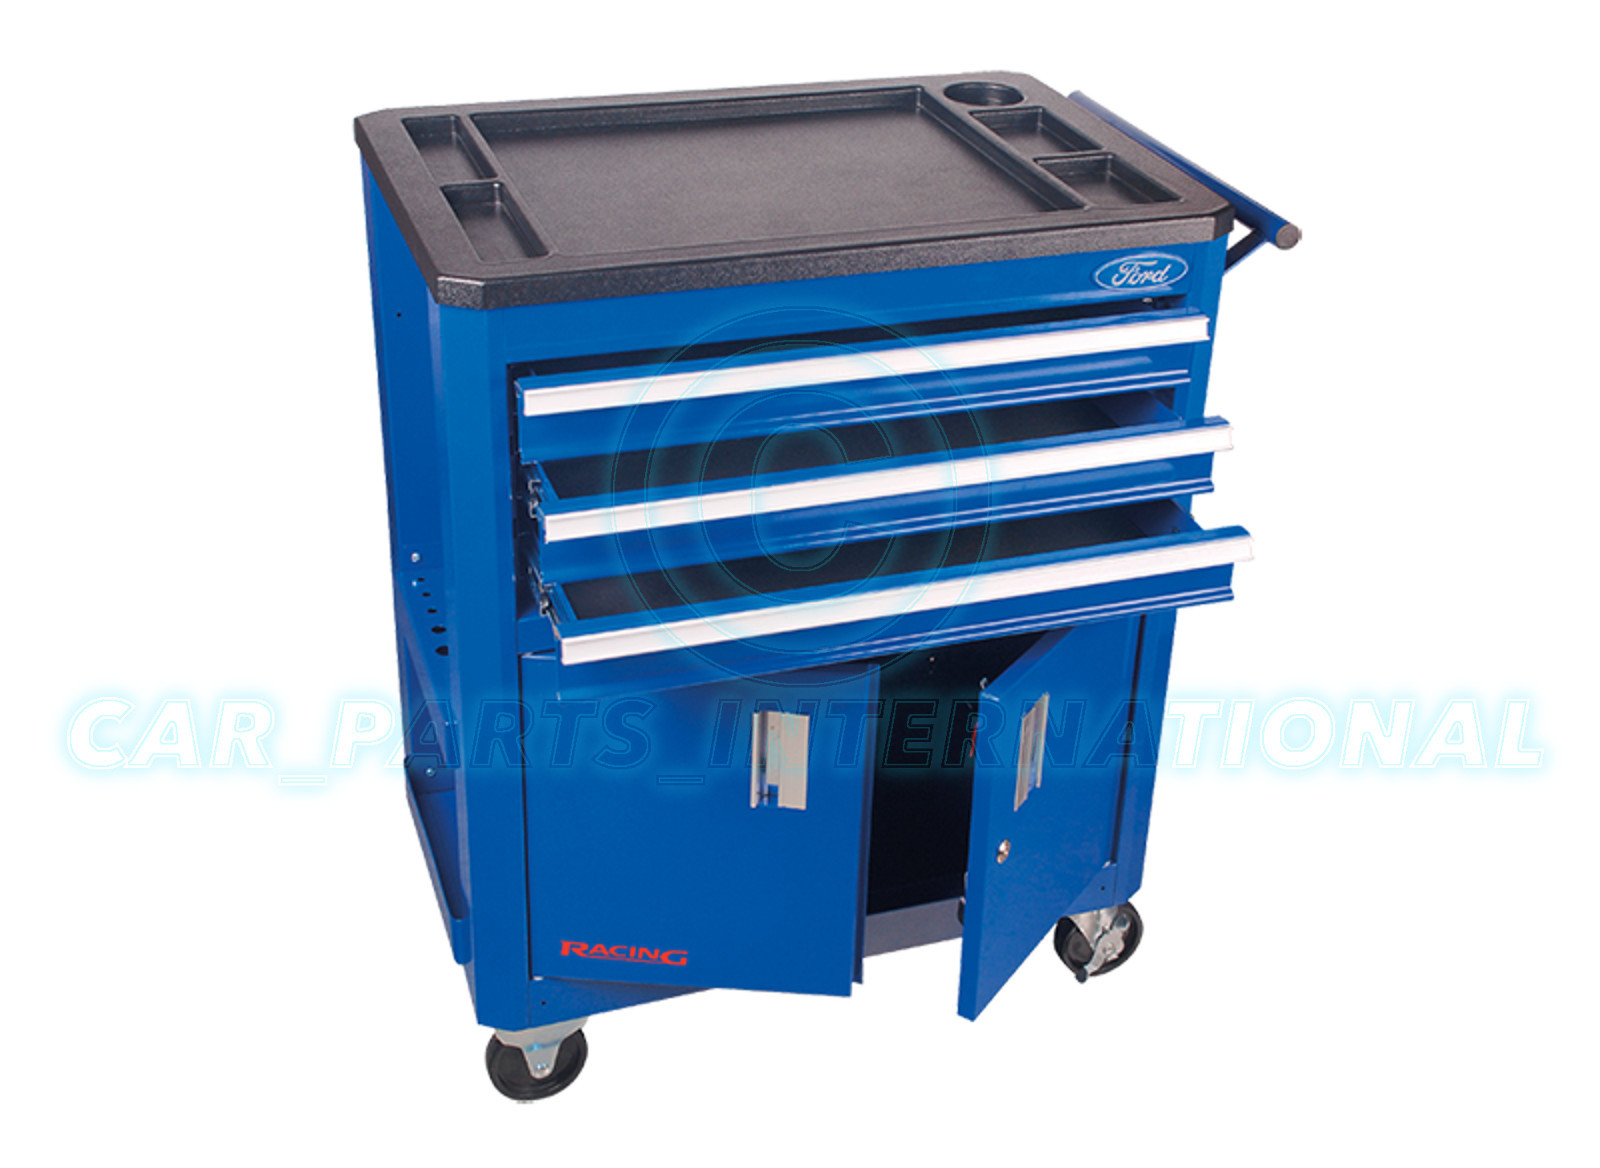 Ford Tool Box : Ford tools racing roller metal tool box cabinet with